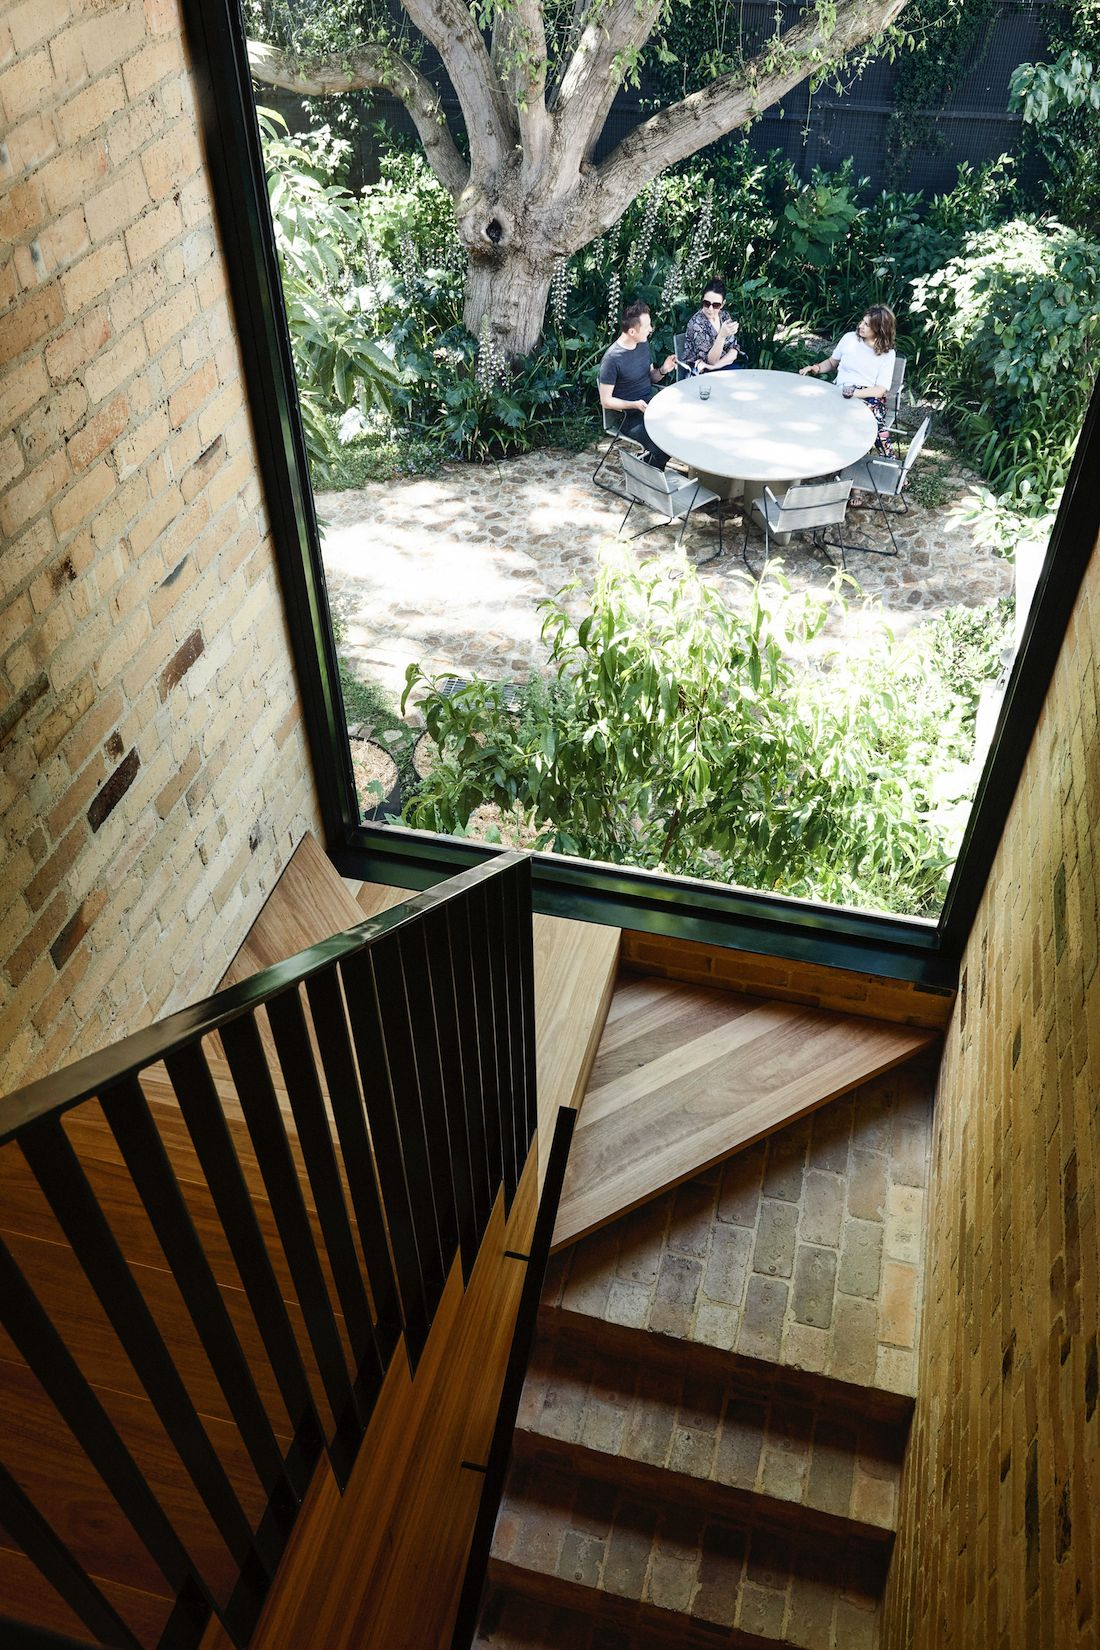 Brick and timber staircase with view